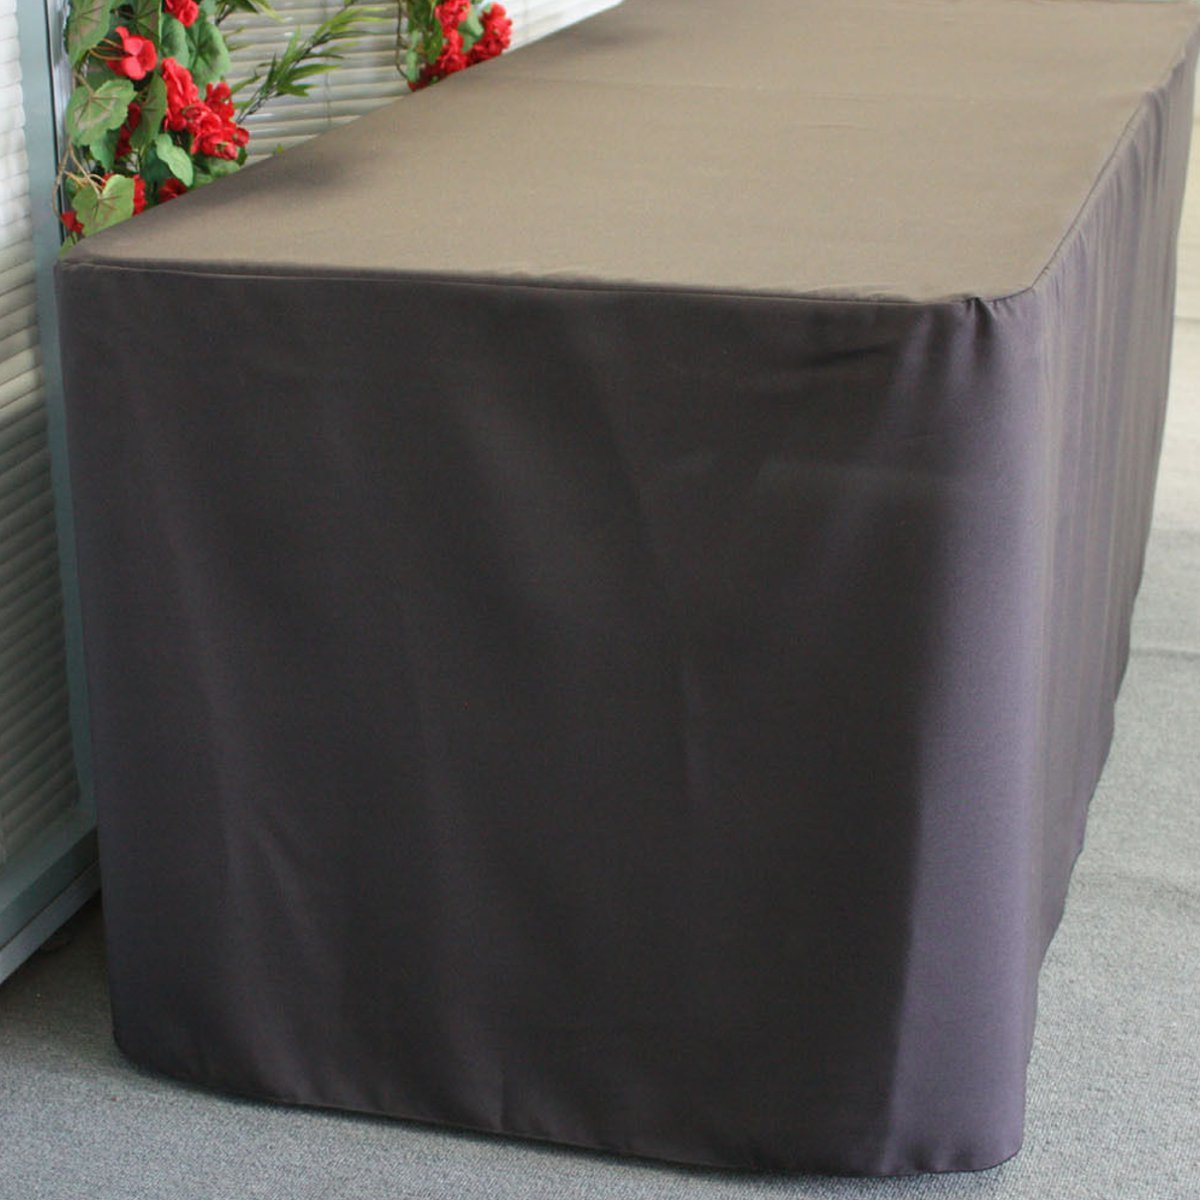 123cmX61cmX72cm Trestle Polyester Table Cover Fitted Black To Fit 4 Foot Market Fair Folding Stall